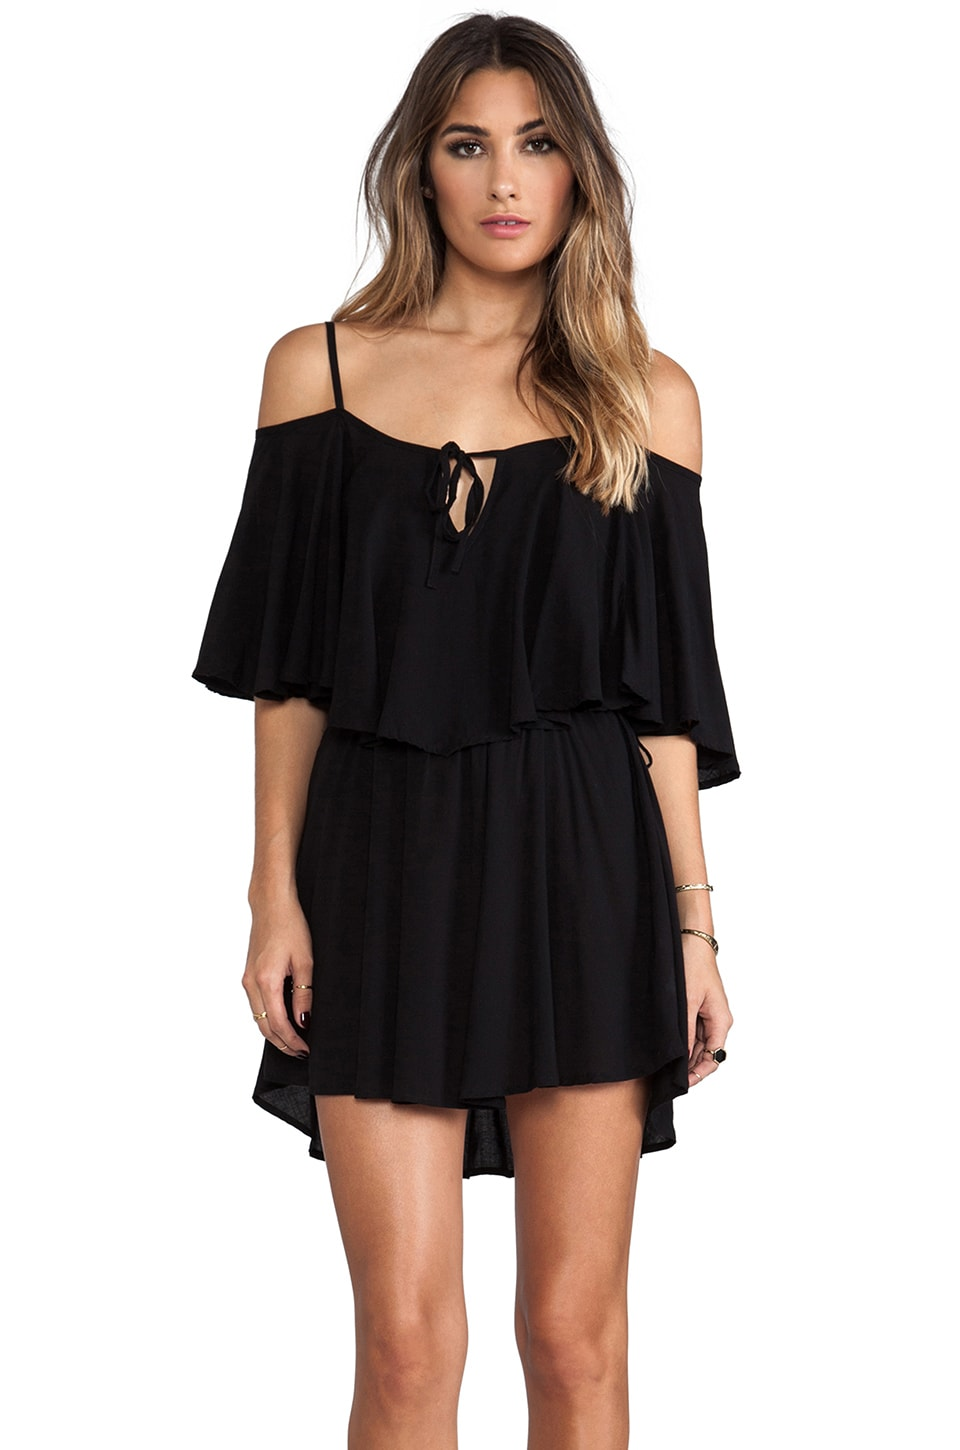 Indah Zhina Rayon Chiffon Flounce Mini Dress in Black